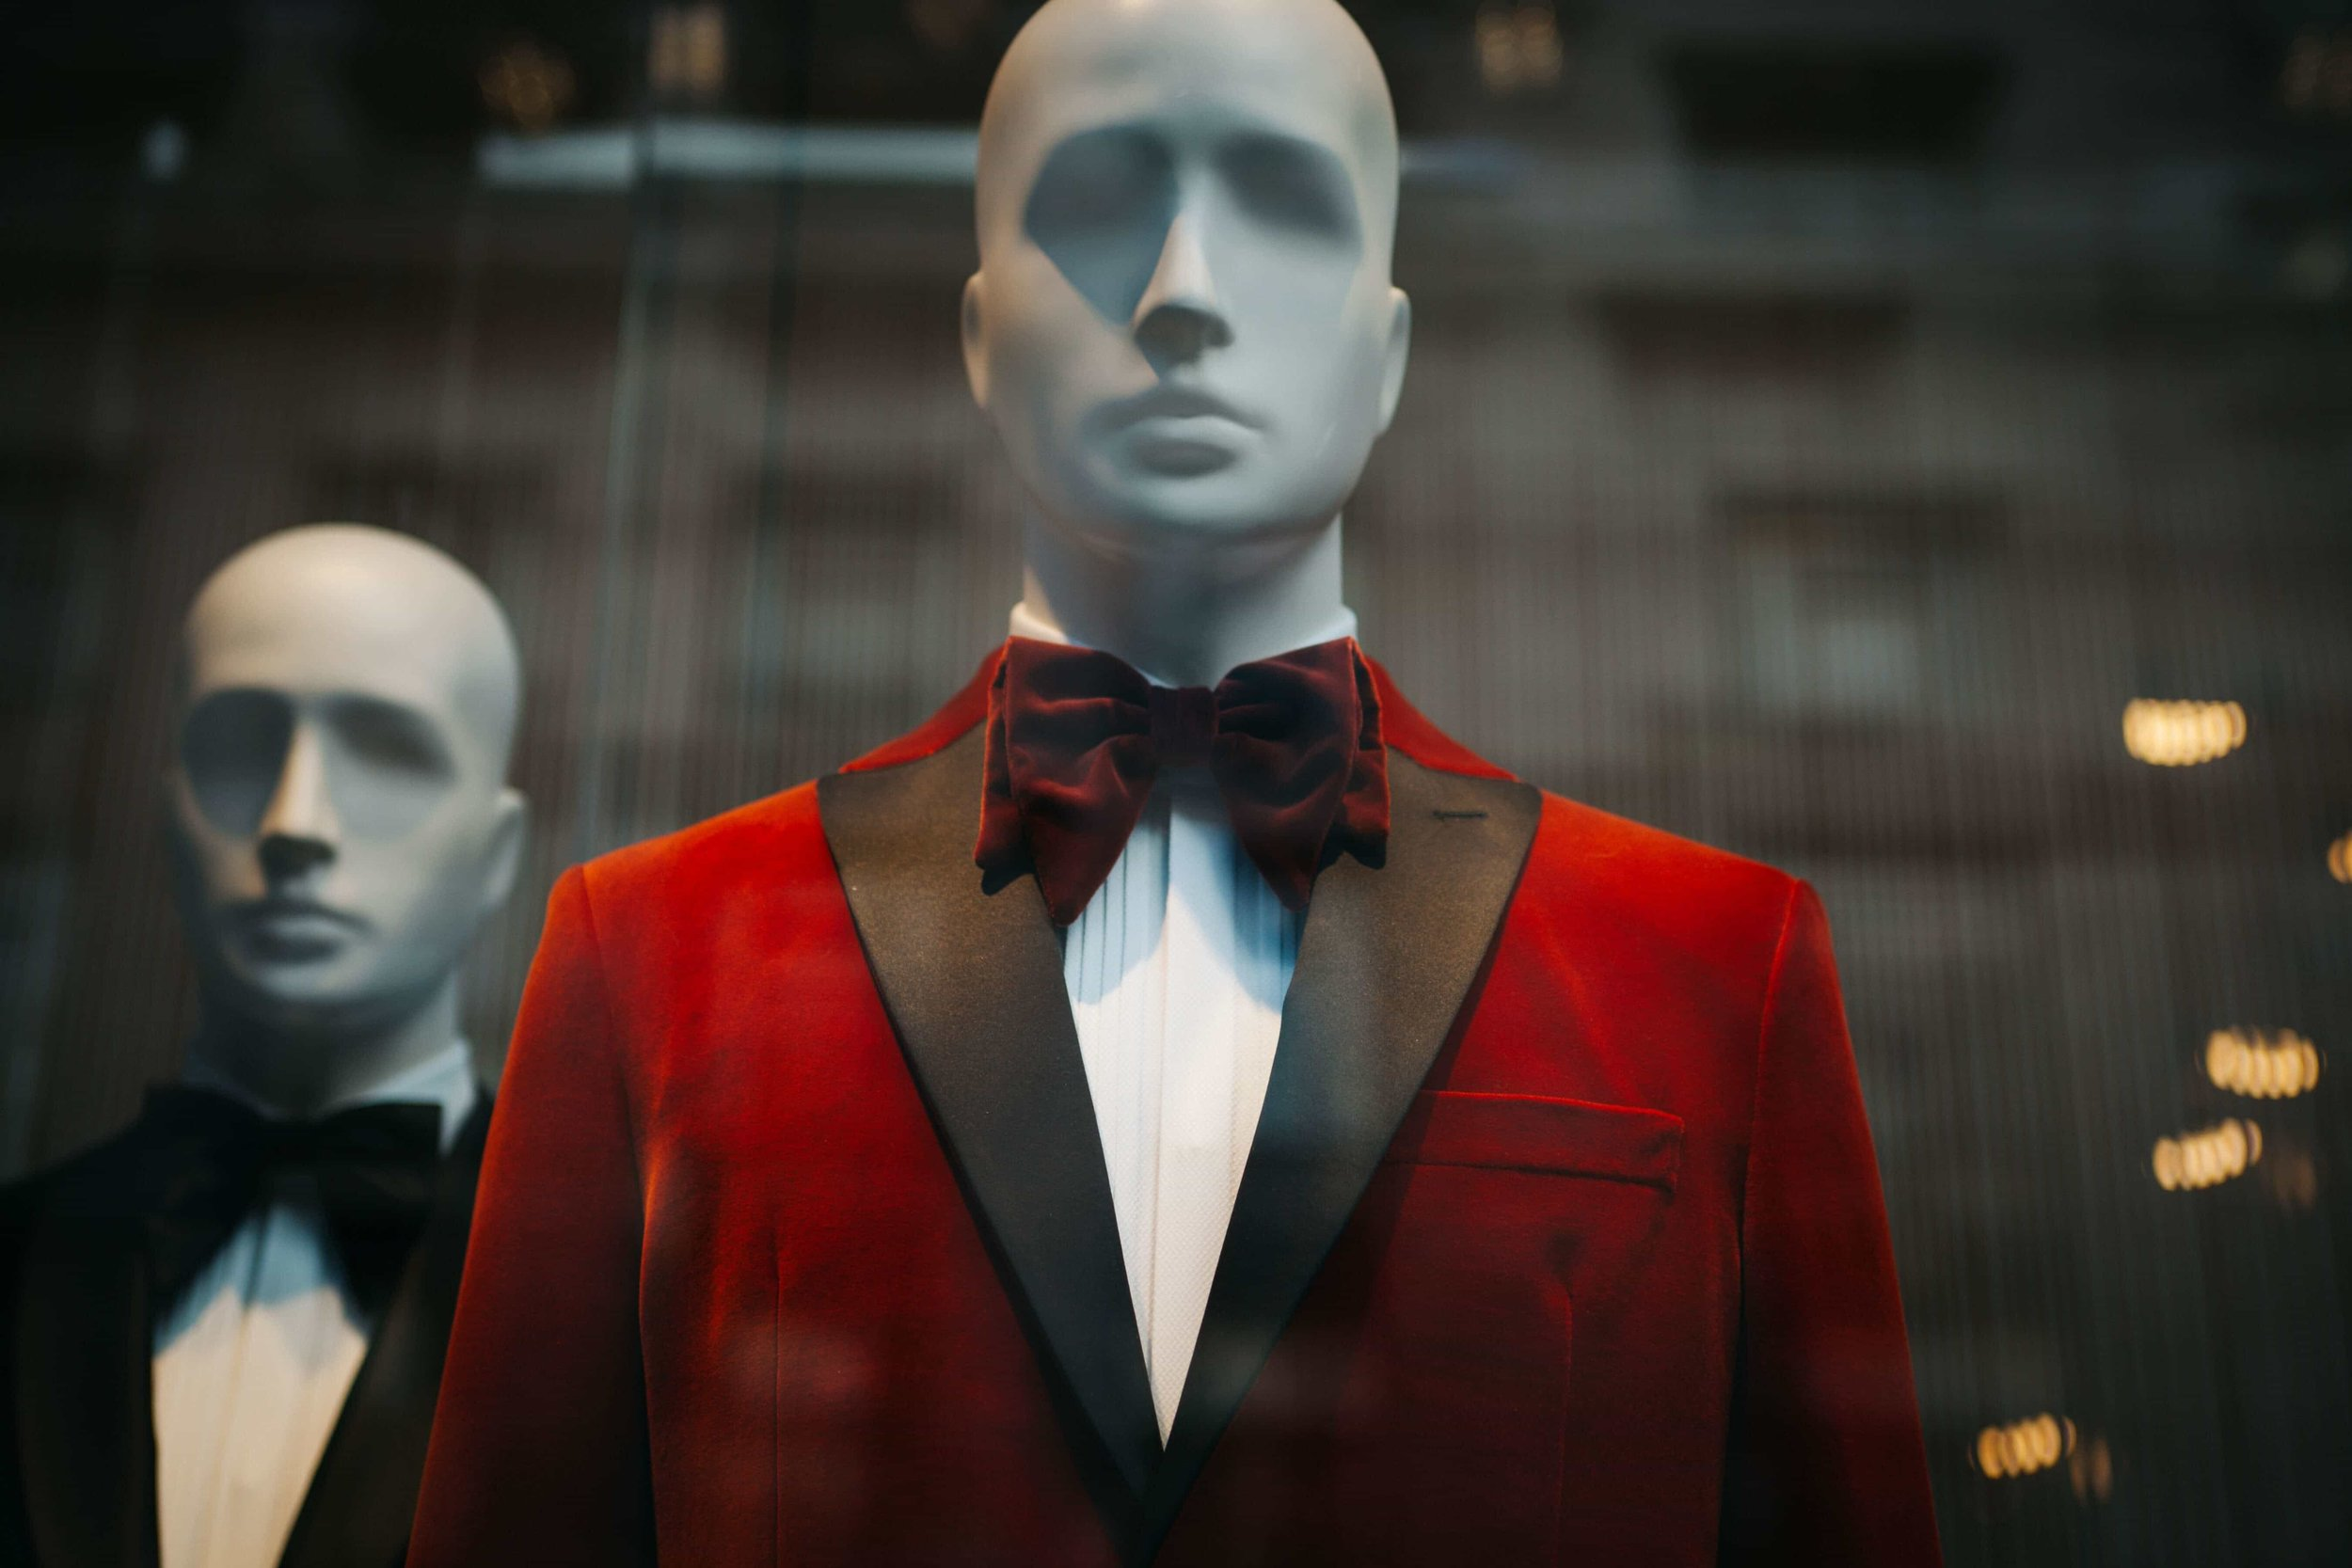 Unconventional red tuxedo with bowtie on mannequin